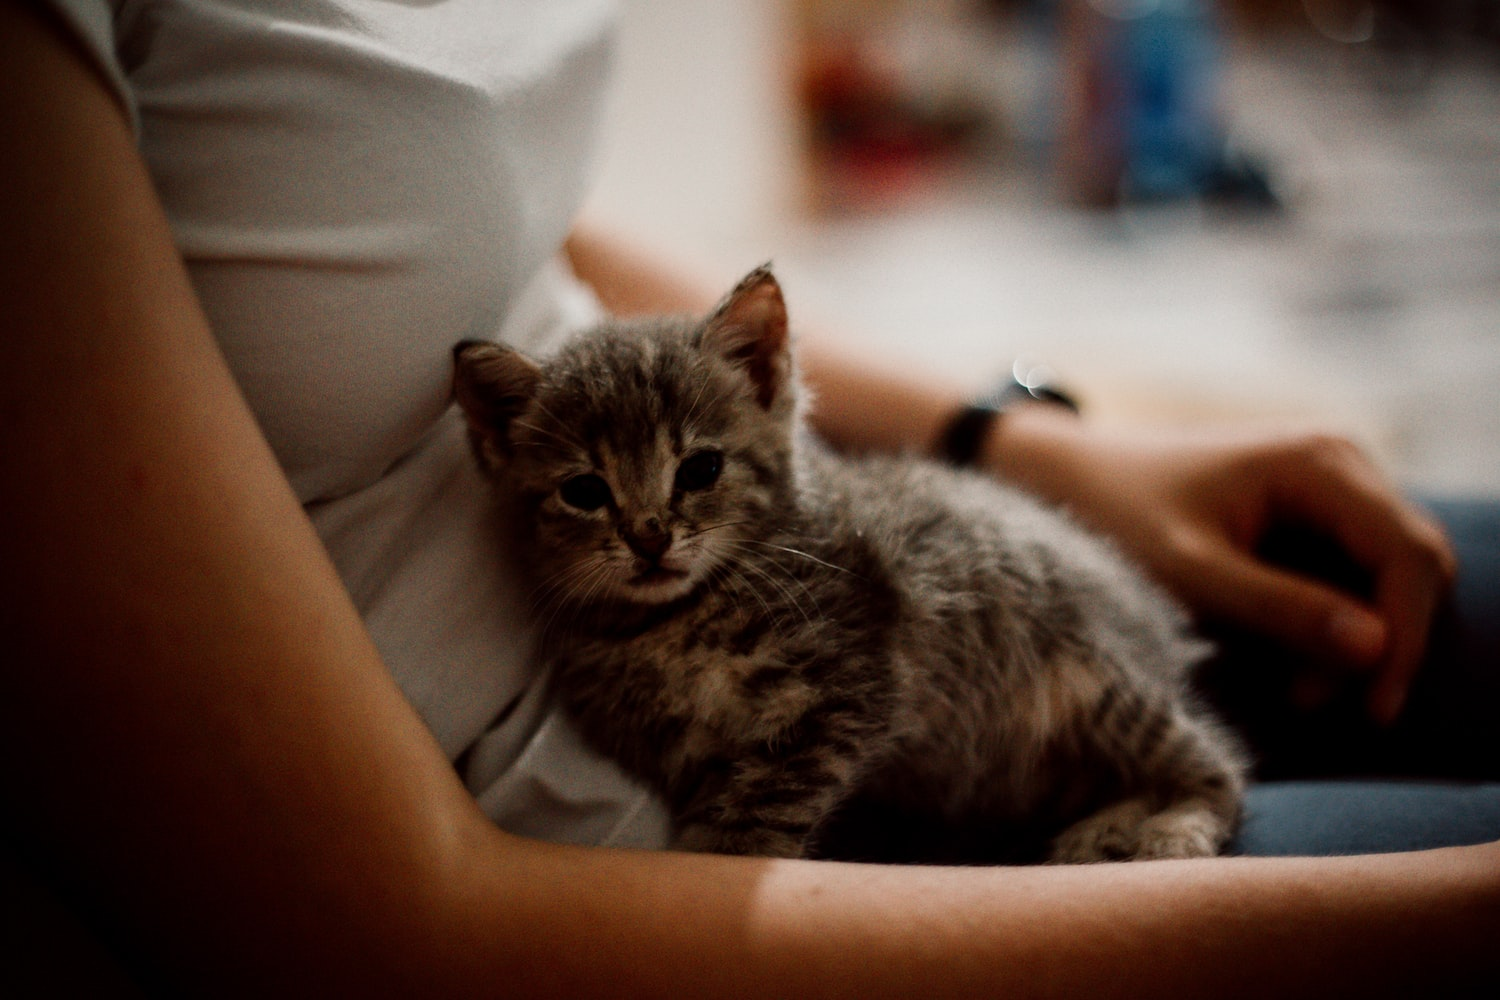 Small tabby kitten in a woman's lap